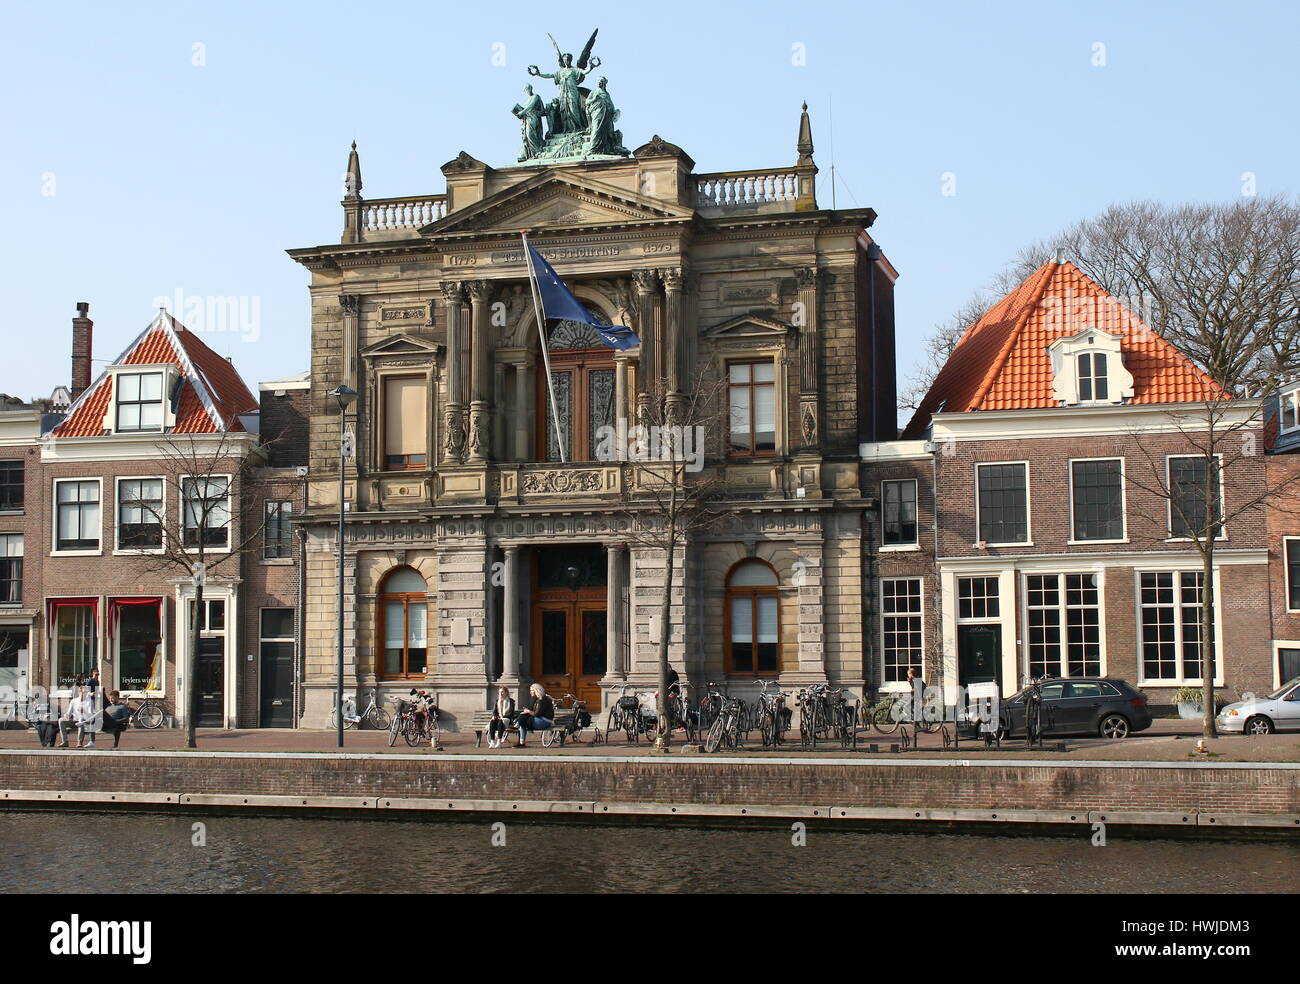 18th century Teyler's Museum  art, natural history, and science museum in Haarlem, Netherlands at Spaarne river - Stock Image